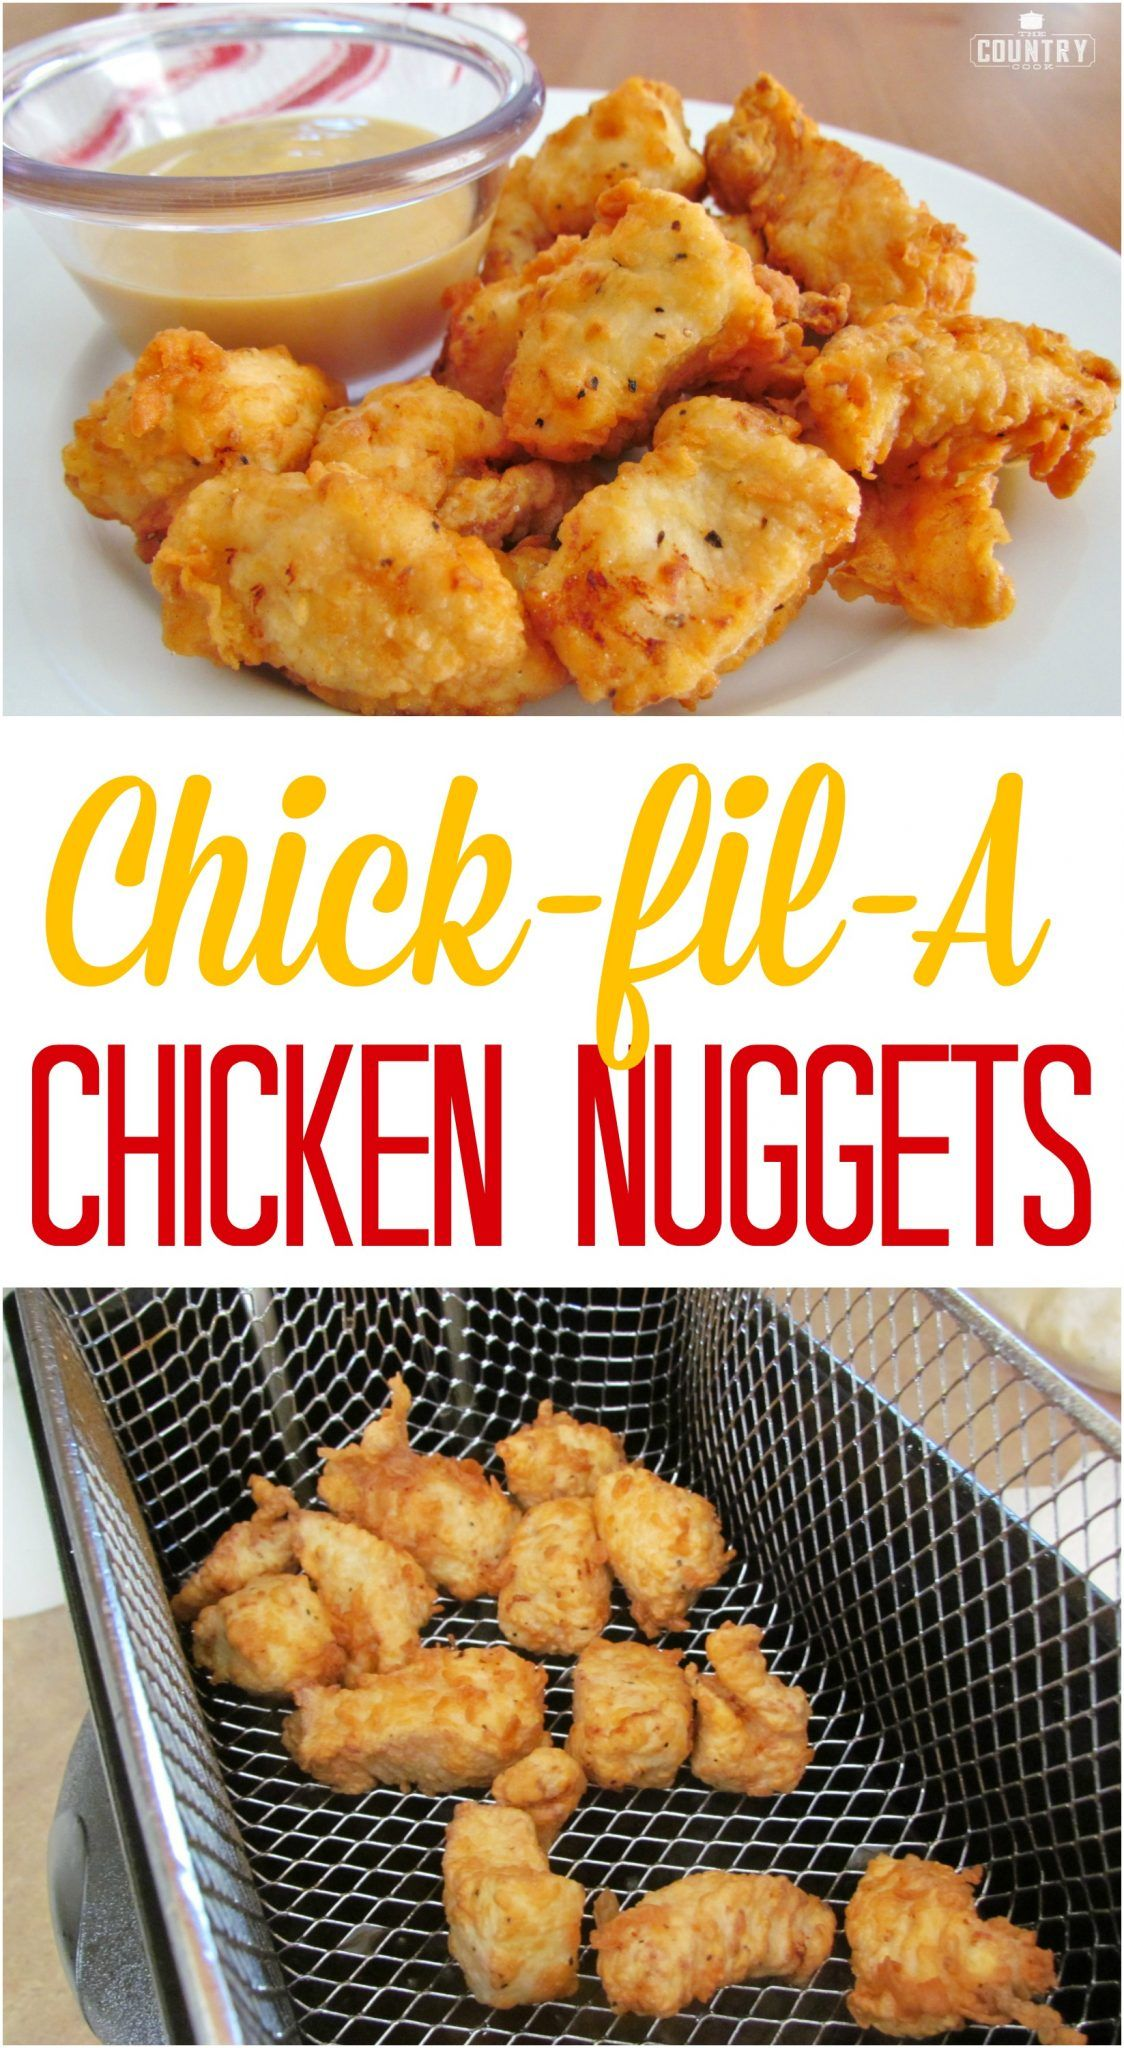 Copycat chick fil a chicken nuggets recipe from the country cook copycat chick fil a chicken nuggets recipe from the country cook finger food forumfinder Choice Image